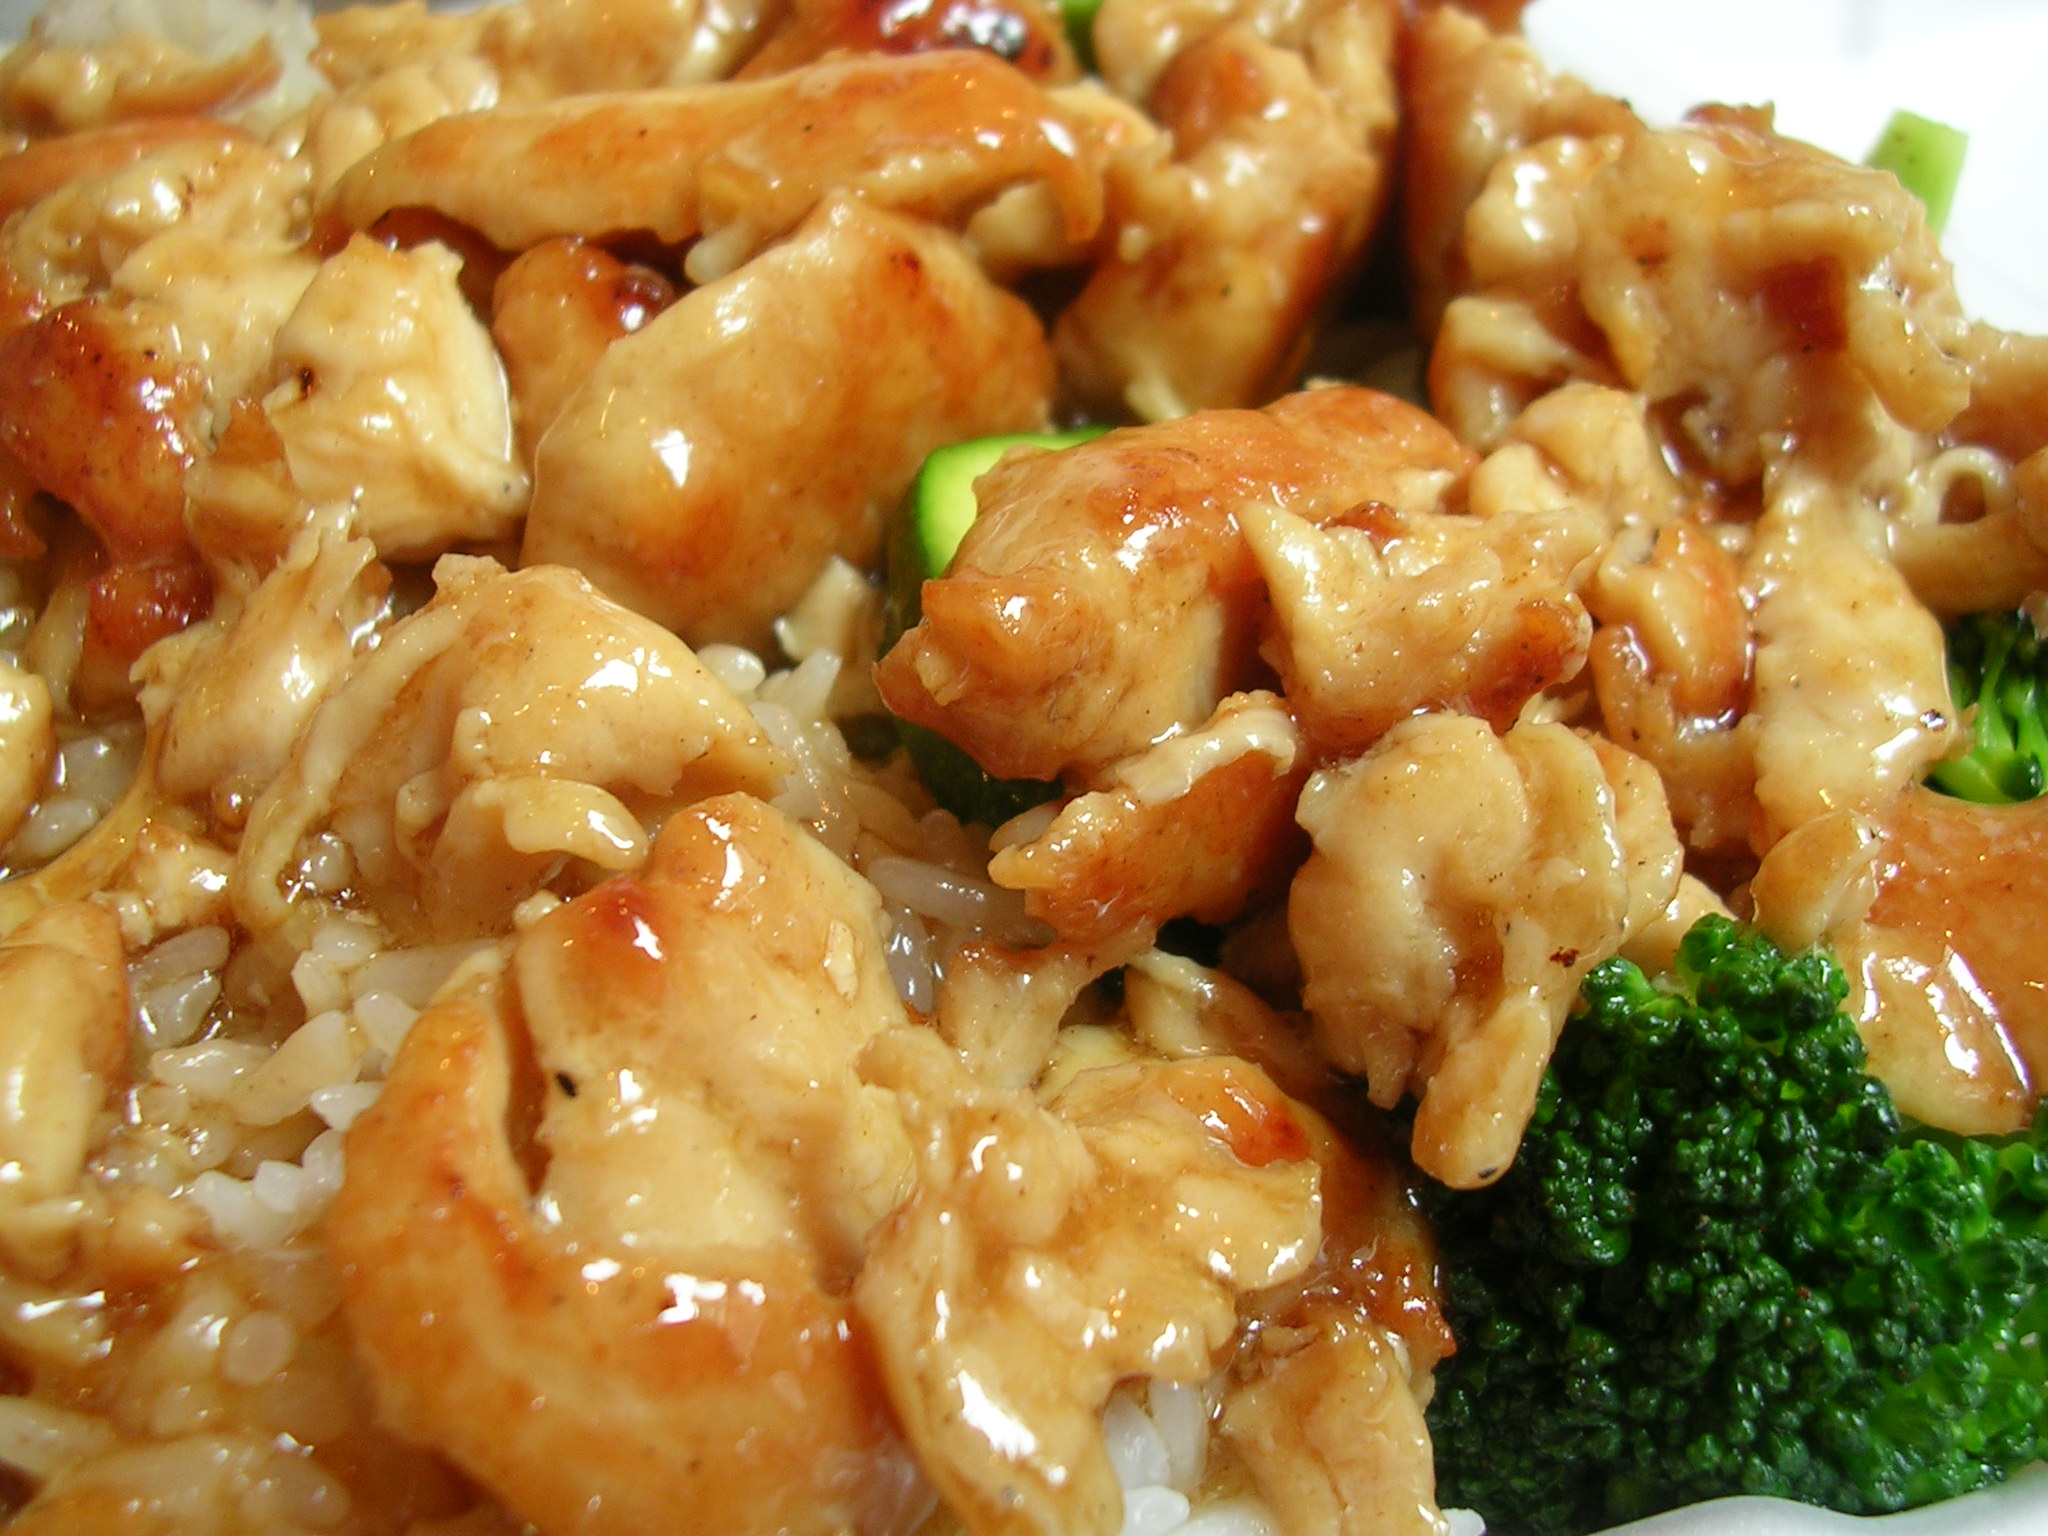 Chinese my edible memories page 7 chicken teriyaki from food court forumfinder Choice Image